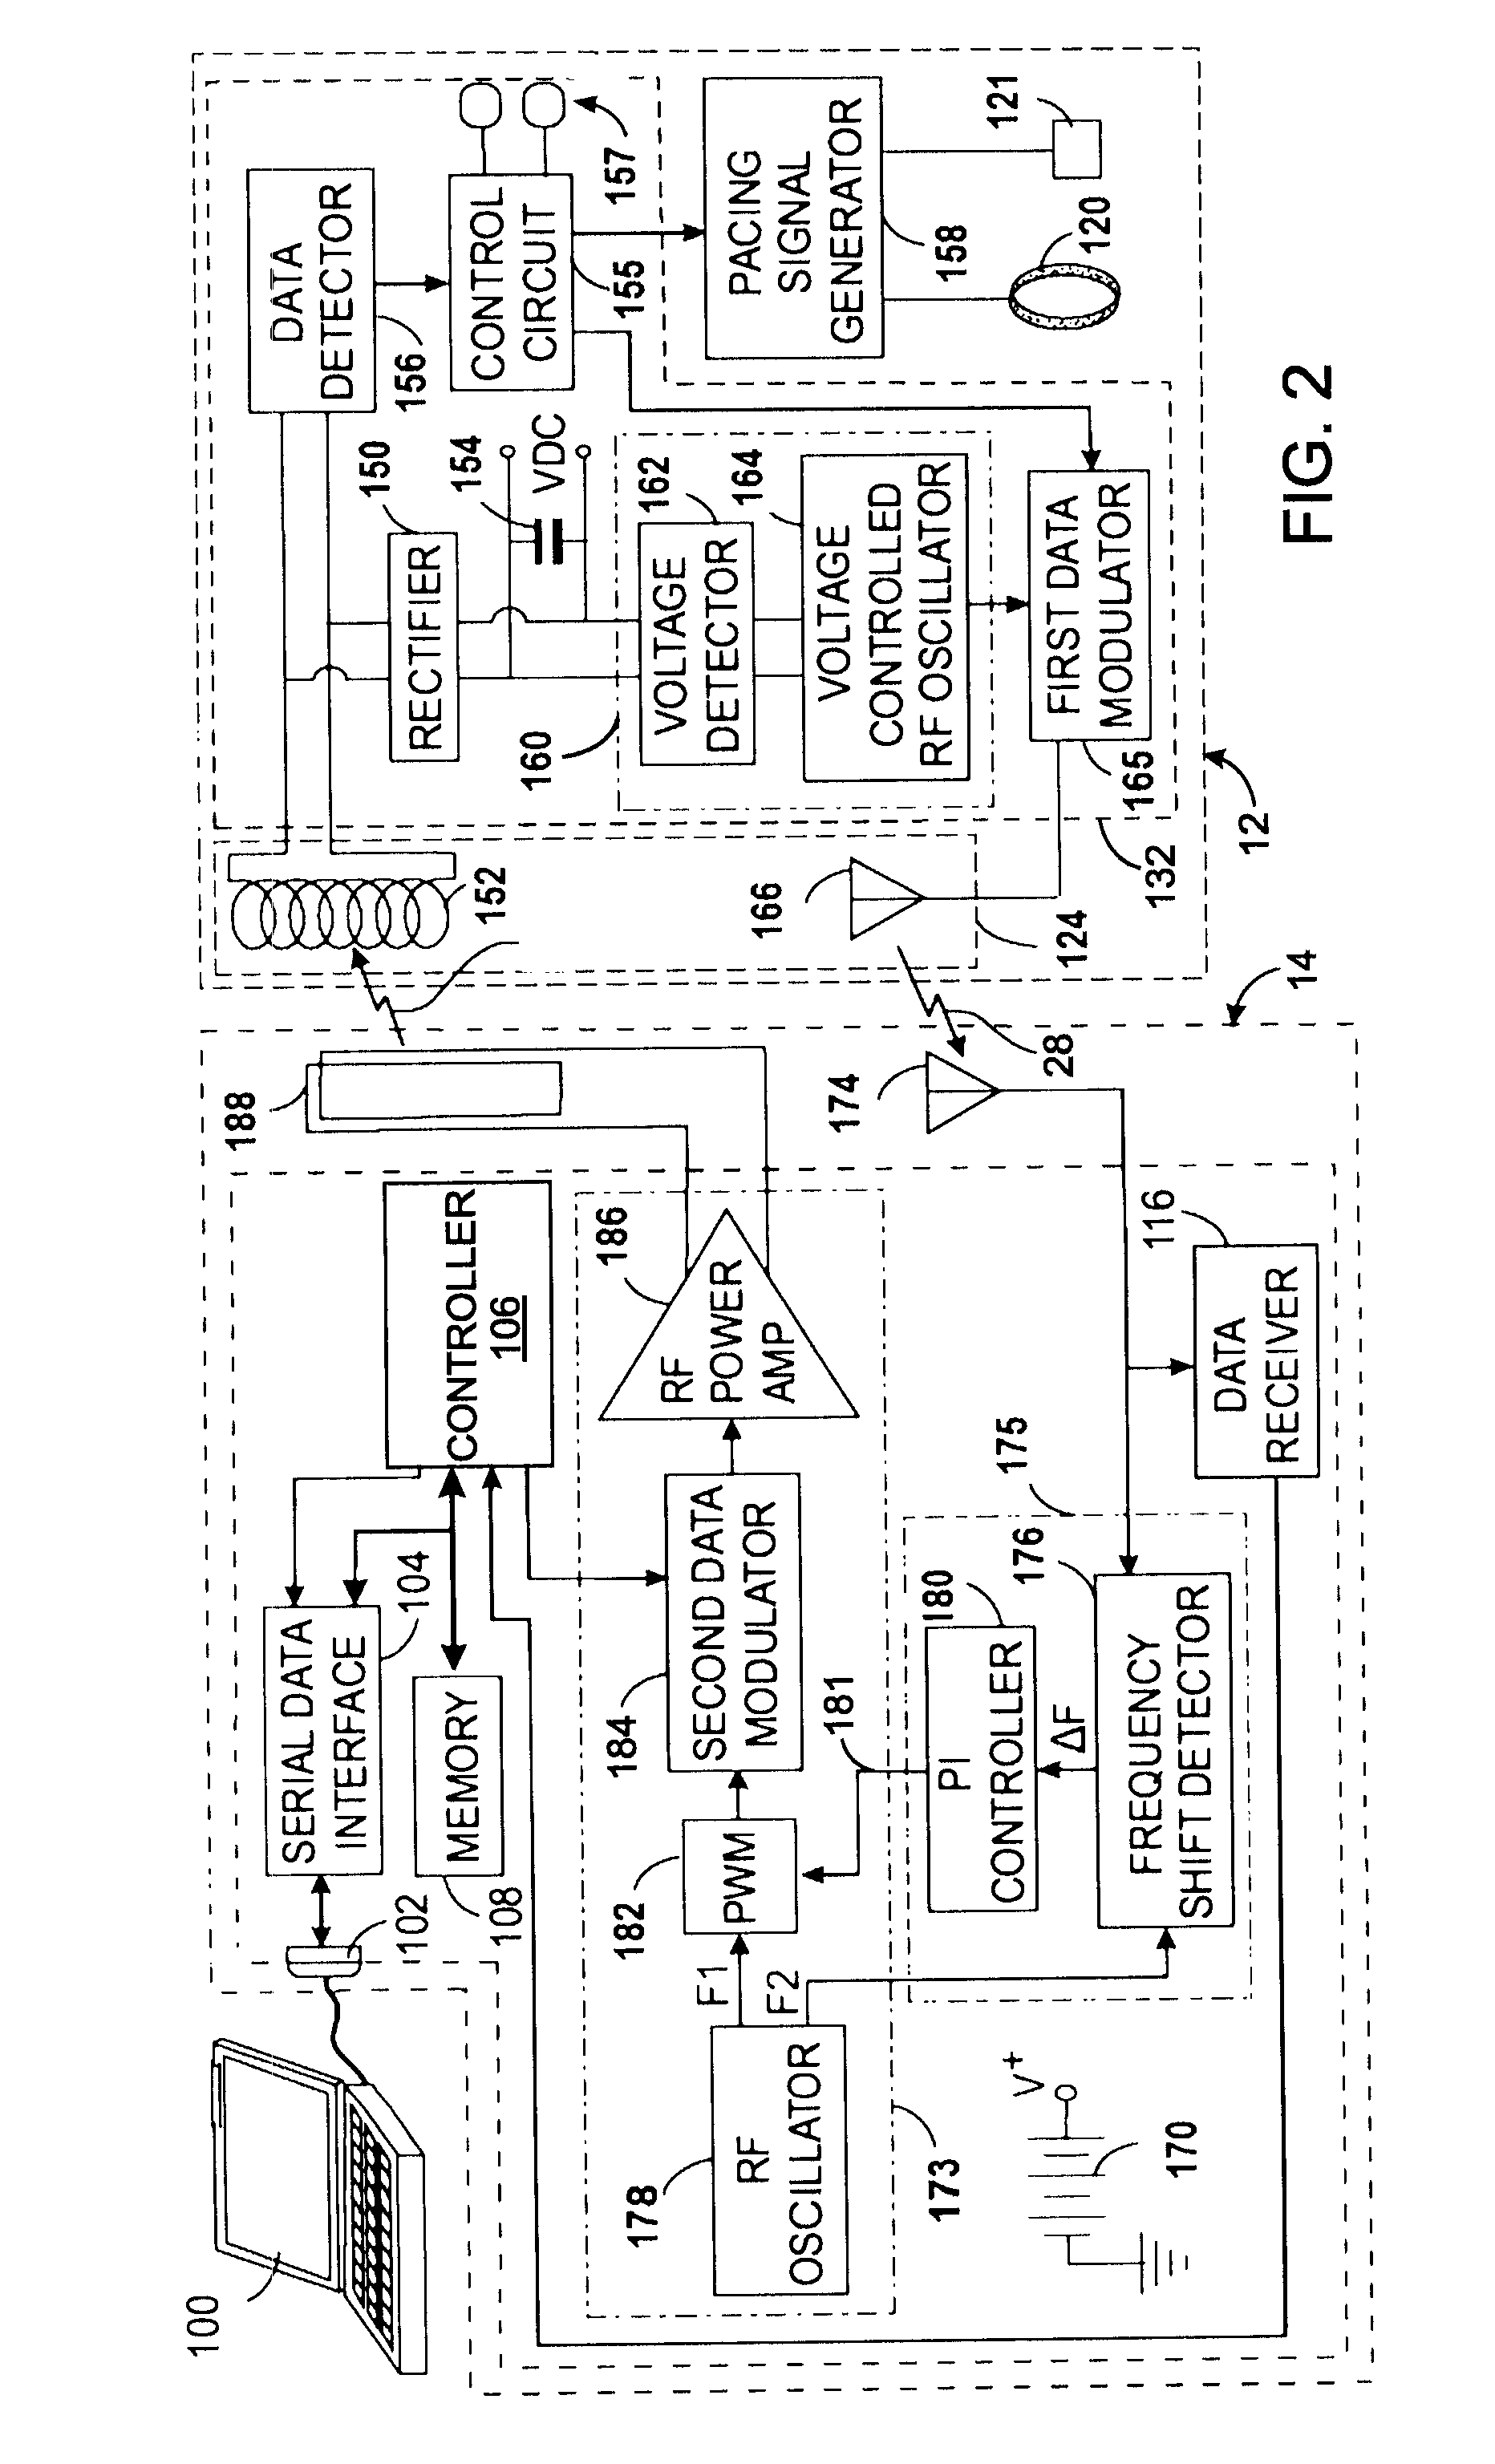 patent us7535296 - class-e radio frequency power amplifier with feedback control